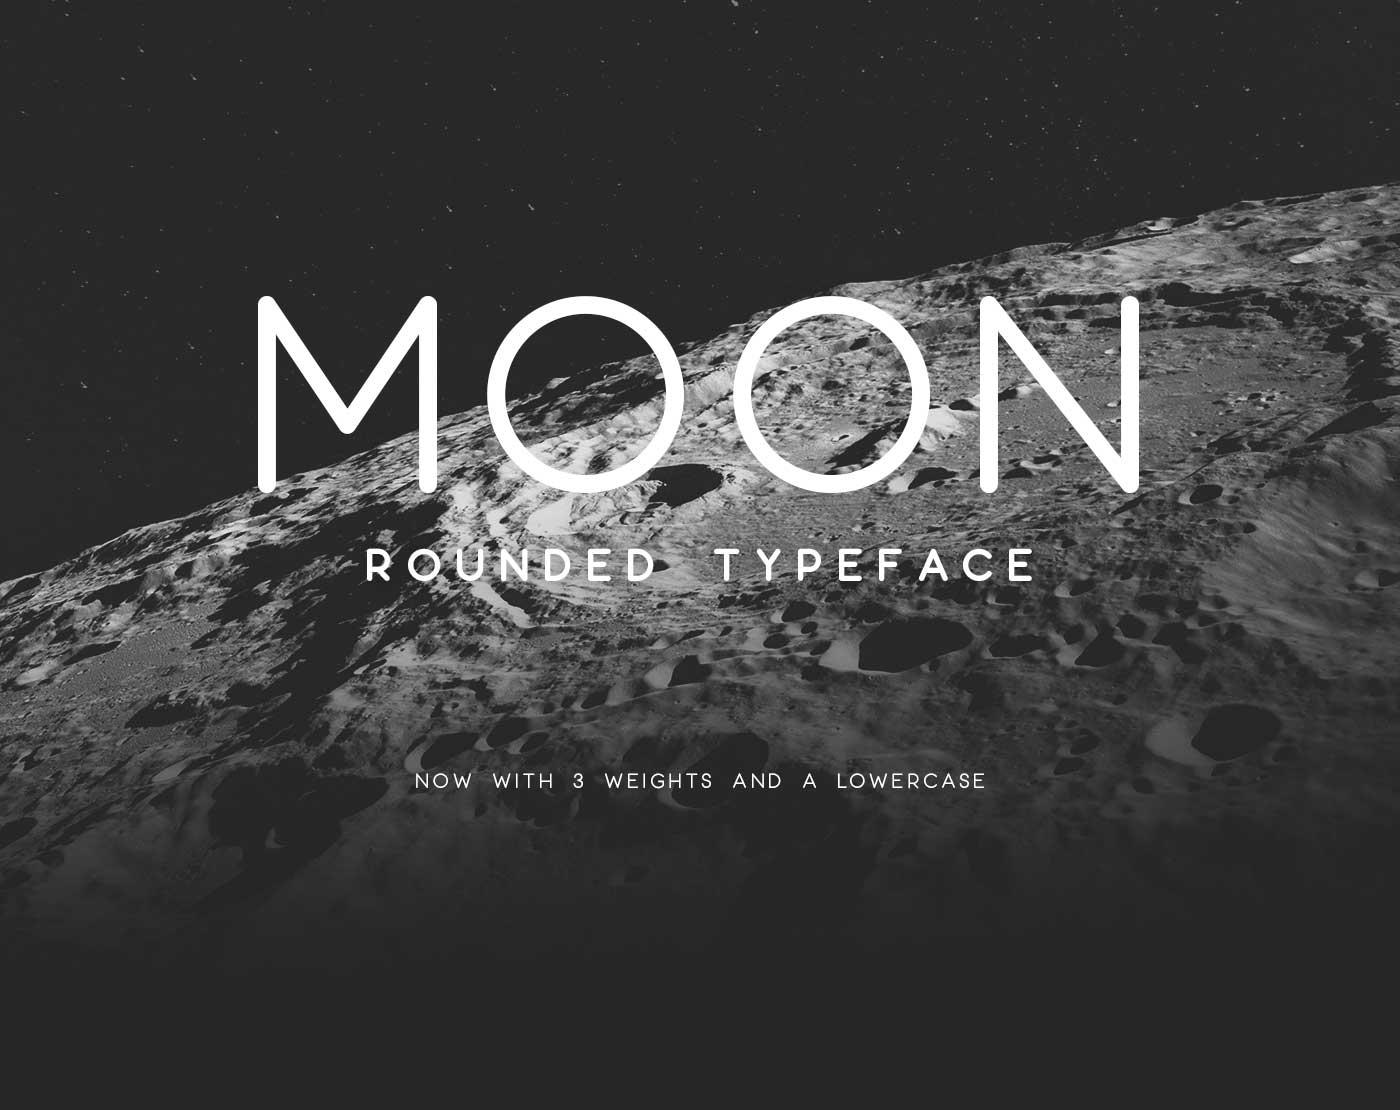 A preview of the Moon font face against a greyscale photo of Earth's moon's surface.